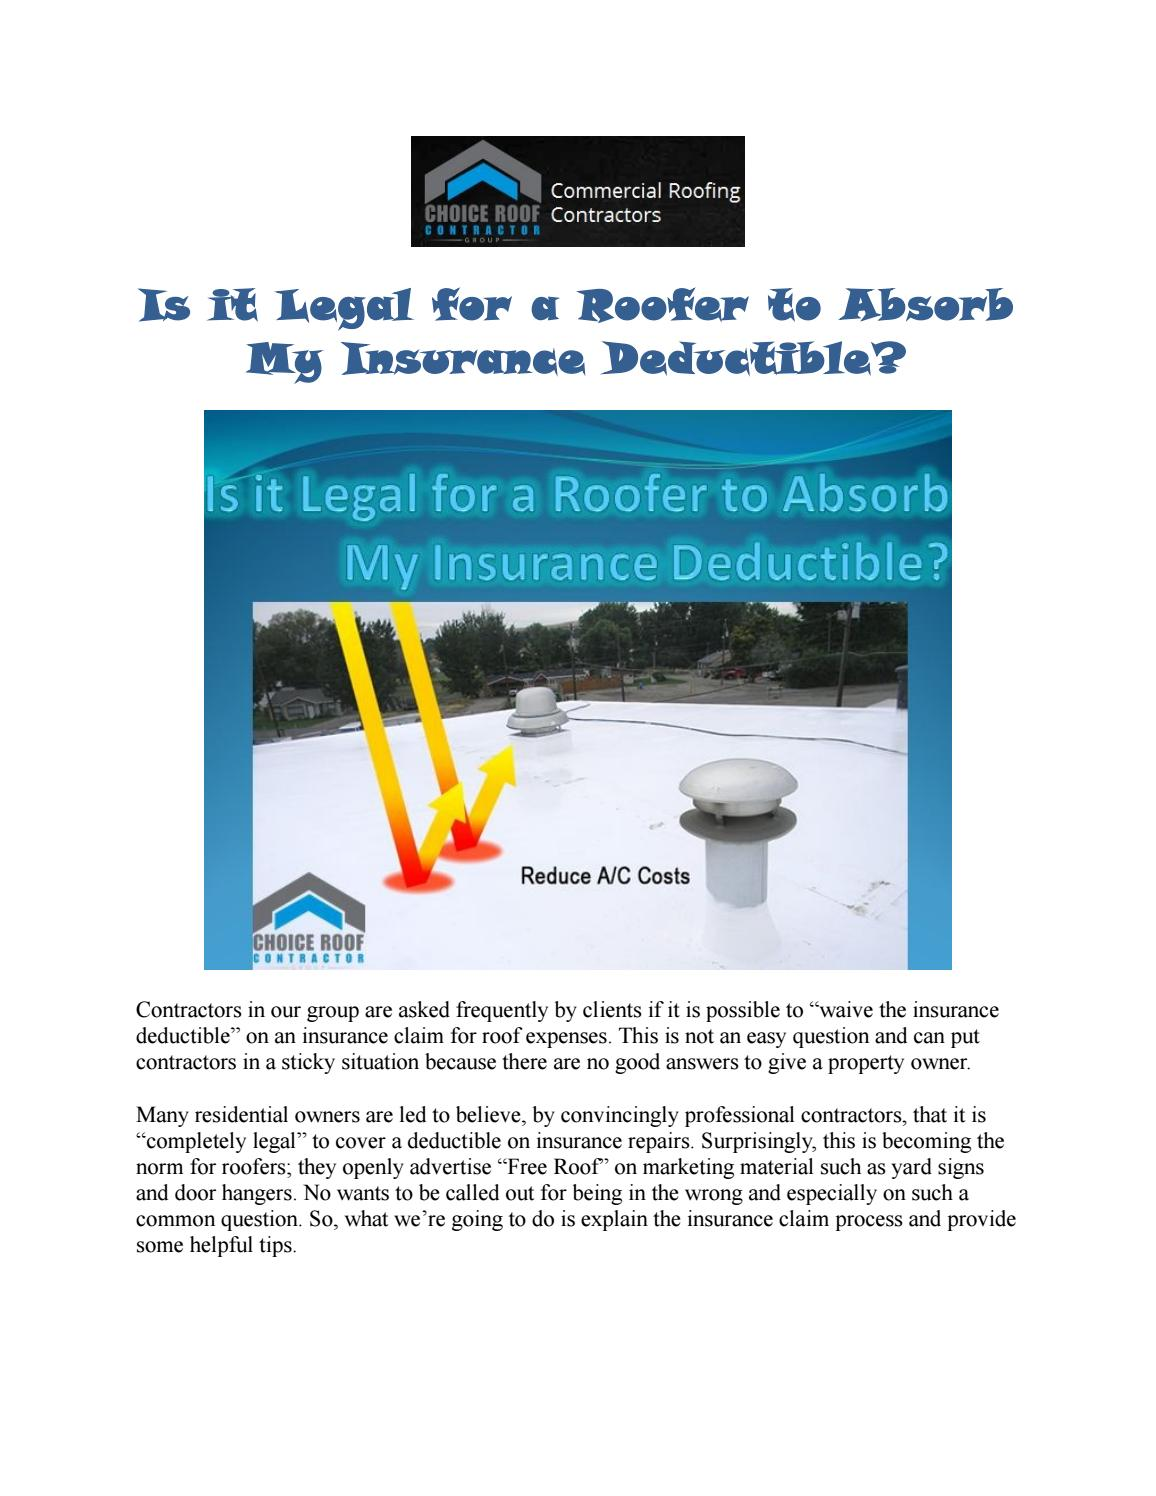 Is It Legal For A Roofer To Absorb My Insurance Deductible